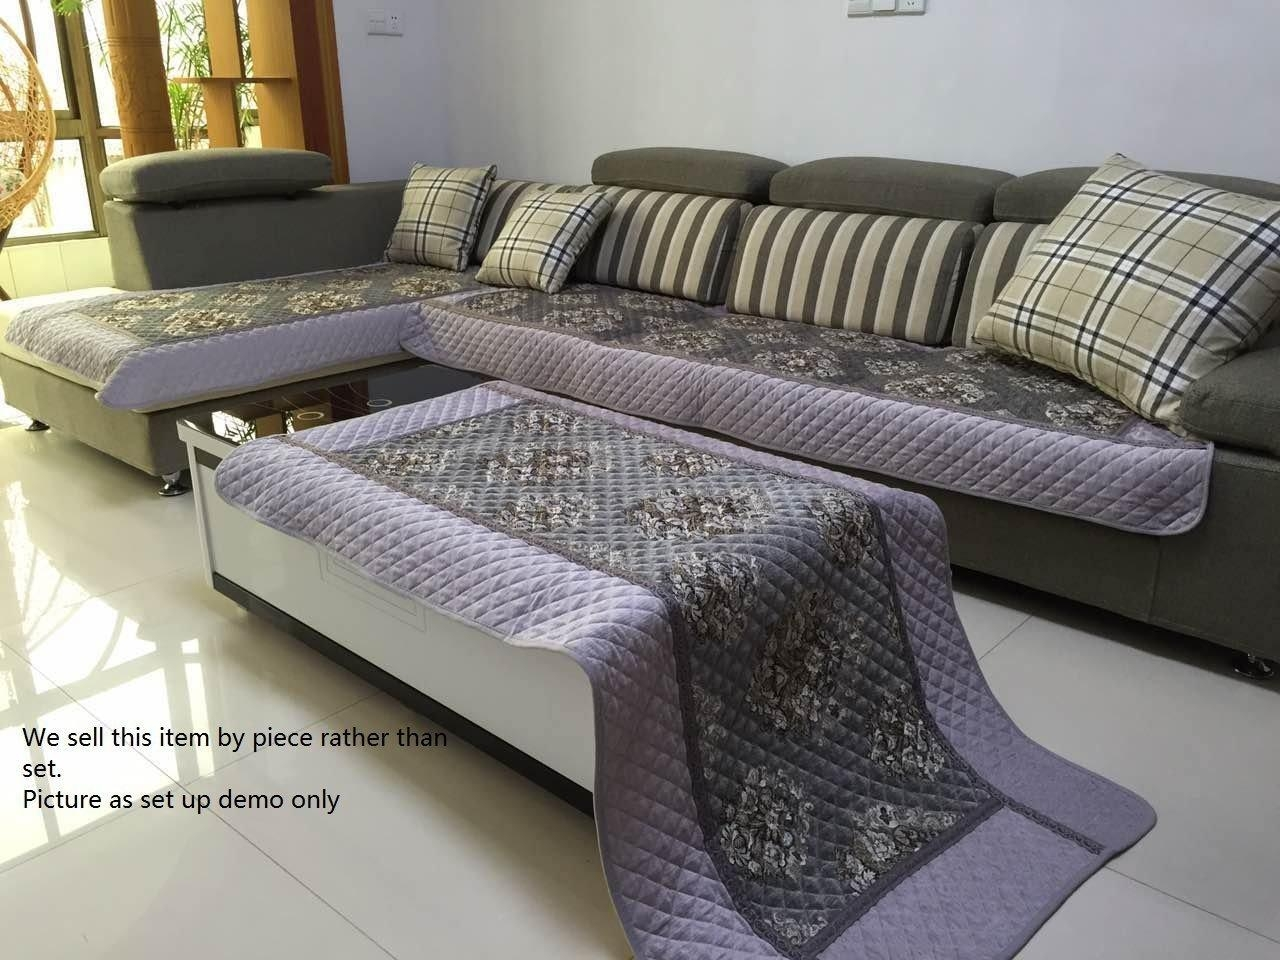 Sofa Covers For Sectional | Sofa Gallery | Kengire Inside Sofas Cover For Sectional Sofas (View 16 of 20)